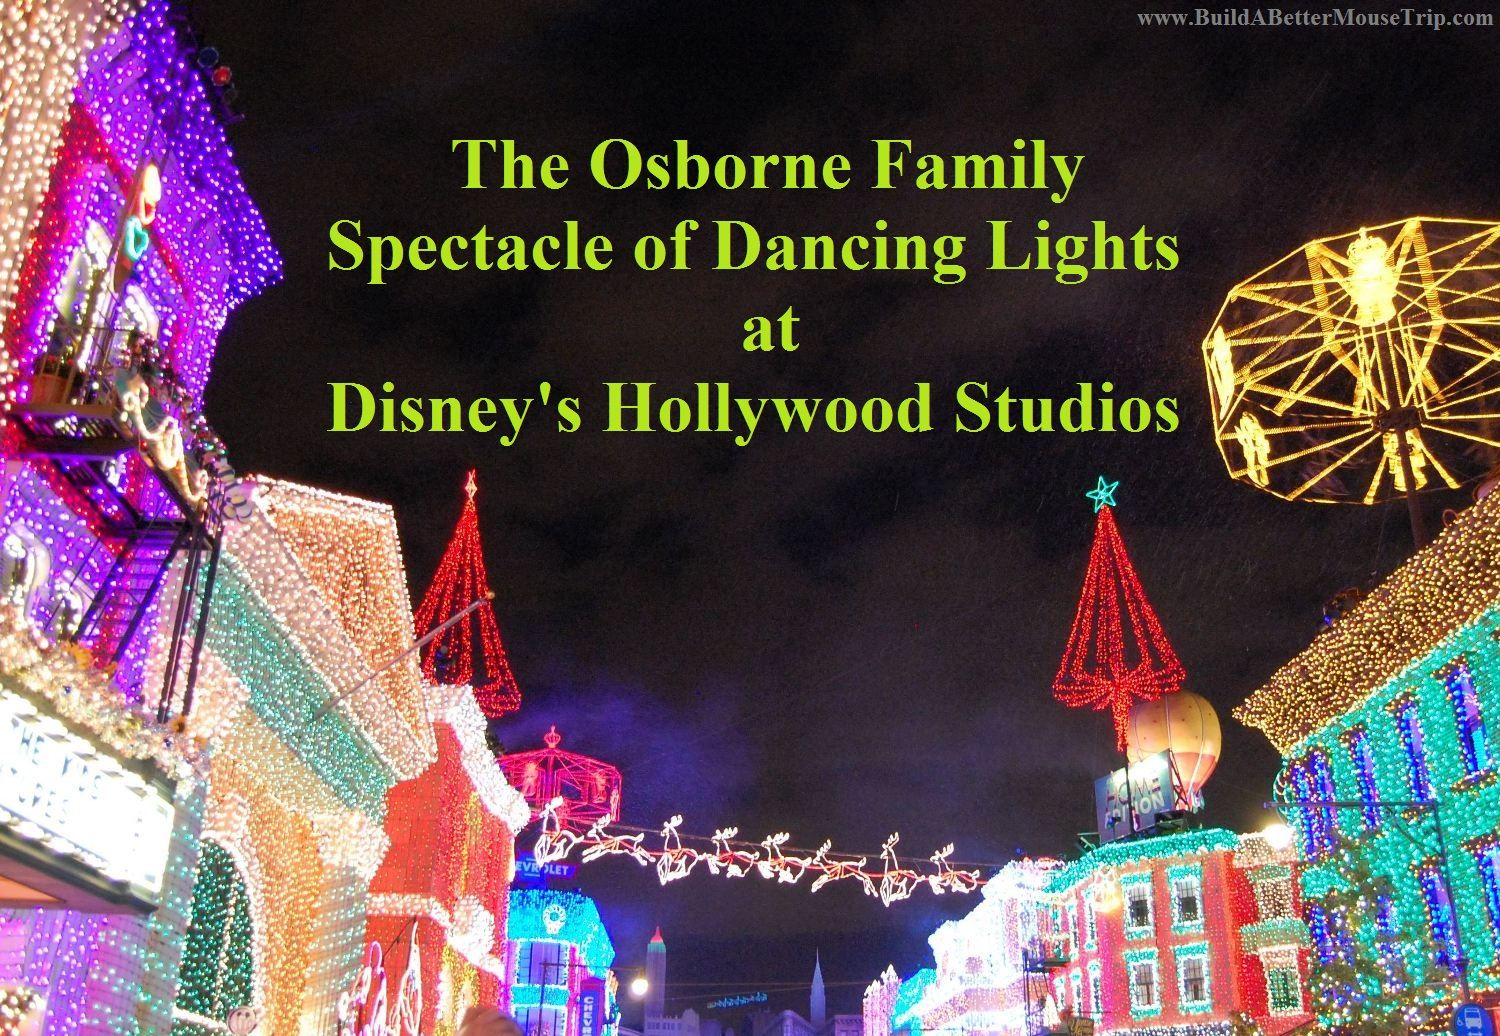 "The Osborne Family Spectacle of Dancing Lights is an incredible Christmas light & music display included with admission at Disney's Hollywood Studios. --- Get free & helpful Disney World ""How To"" vacation planning guides, a list of 45 great Disney World freebies, and Step-by-Step advice to help make your next Disney vacation your best Disney vacation ever!  See: http://www.buildabettermousetrip.com/disney-freebies/   #Disneyworld #WDW"